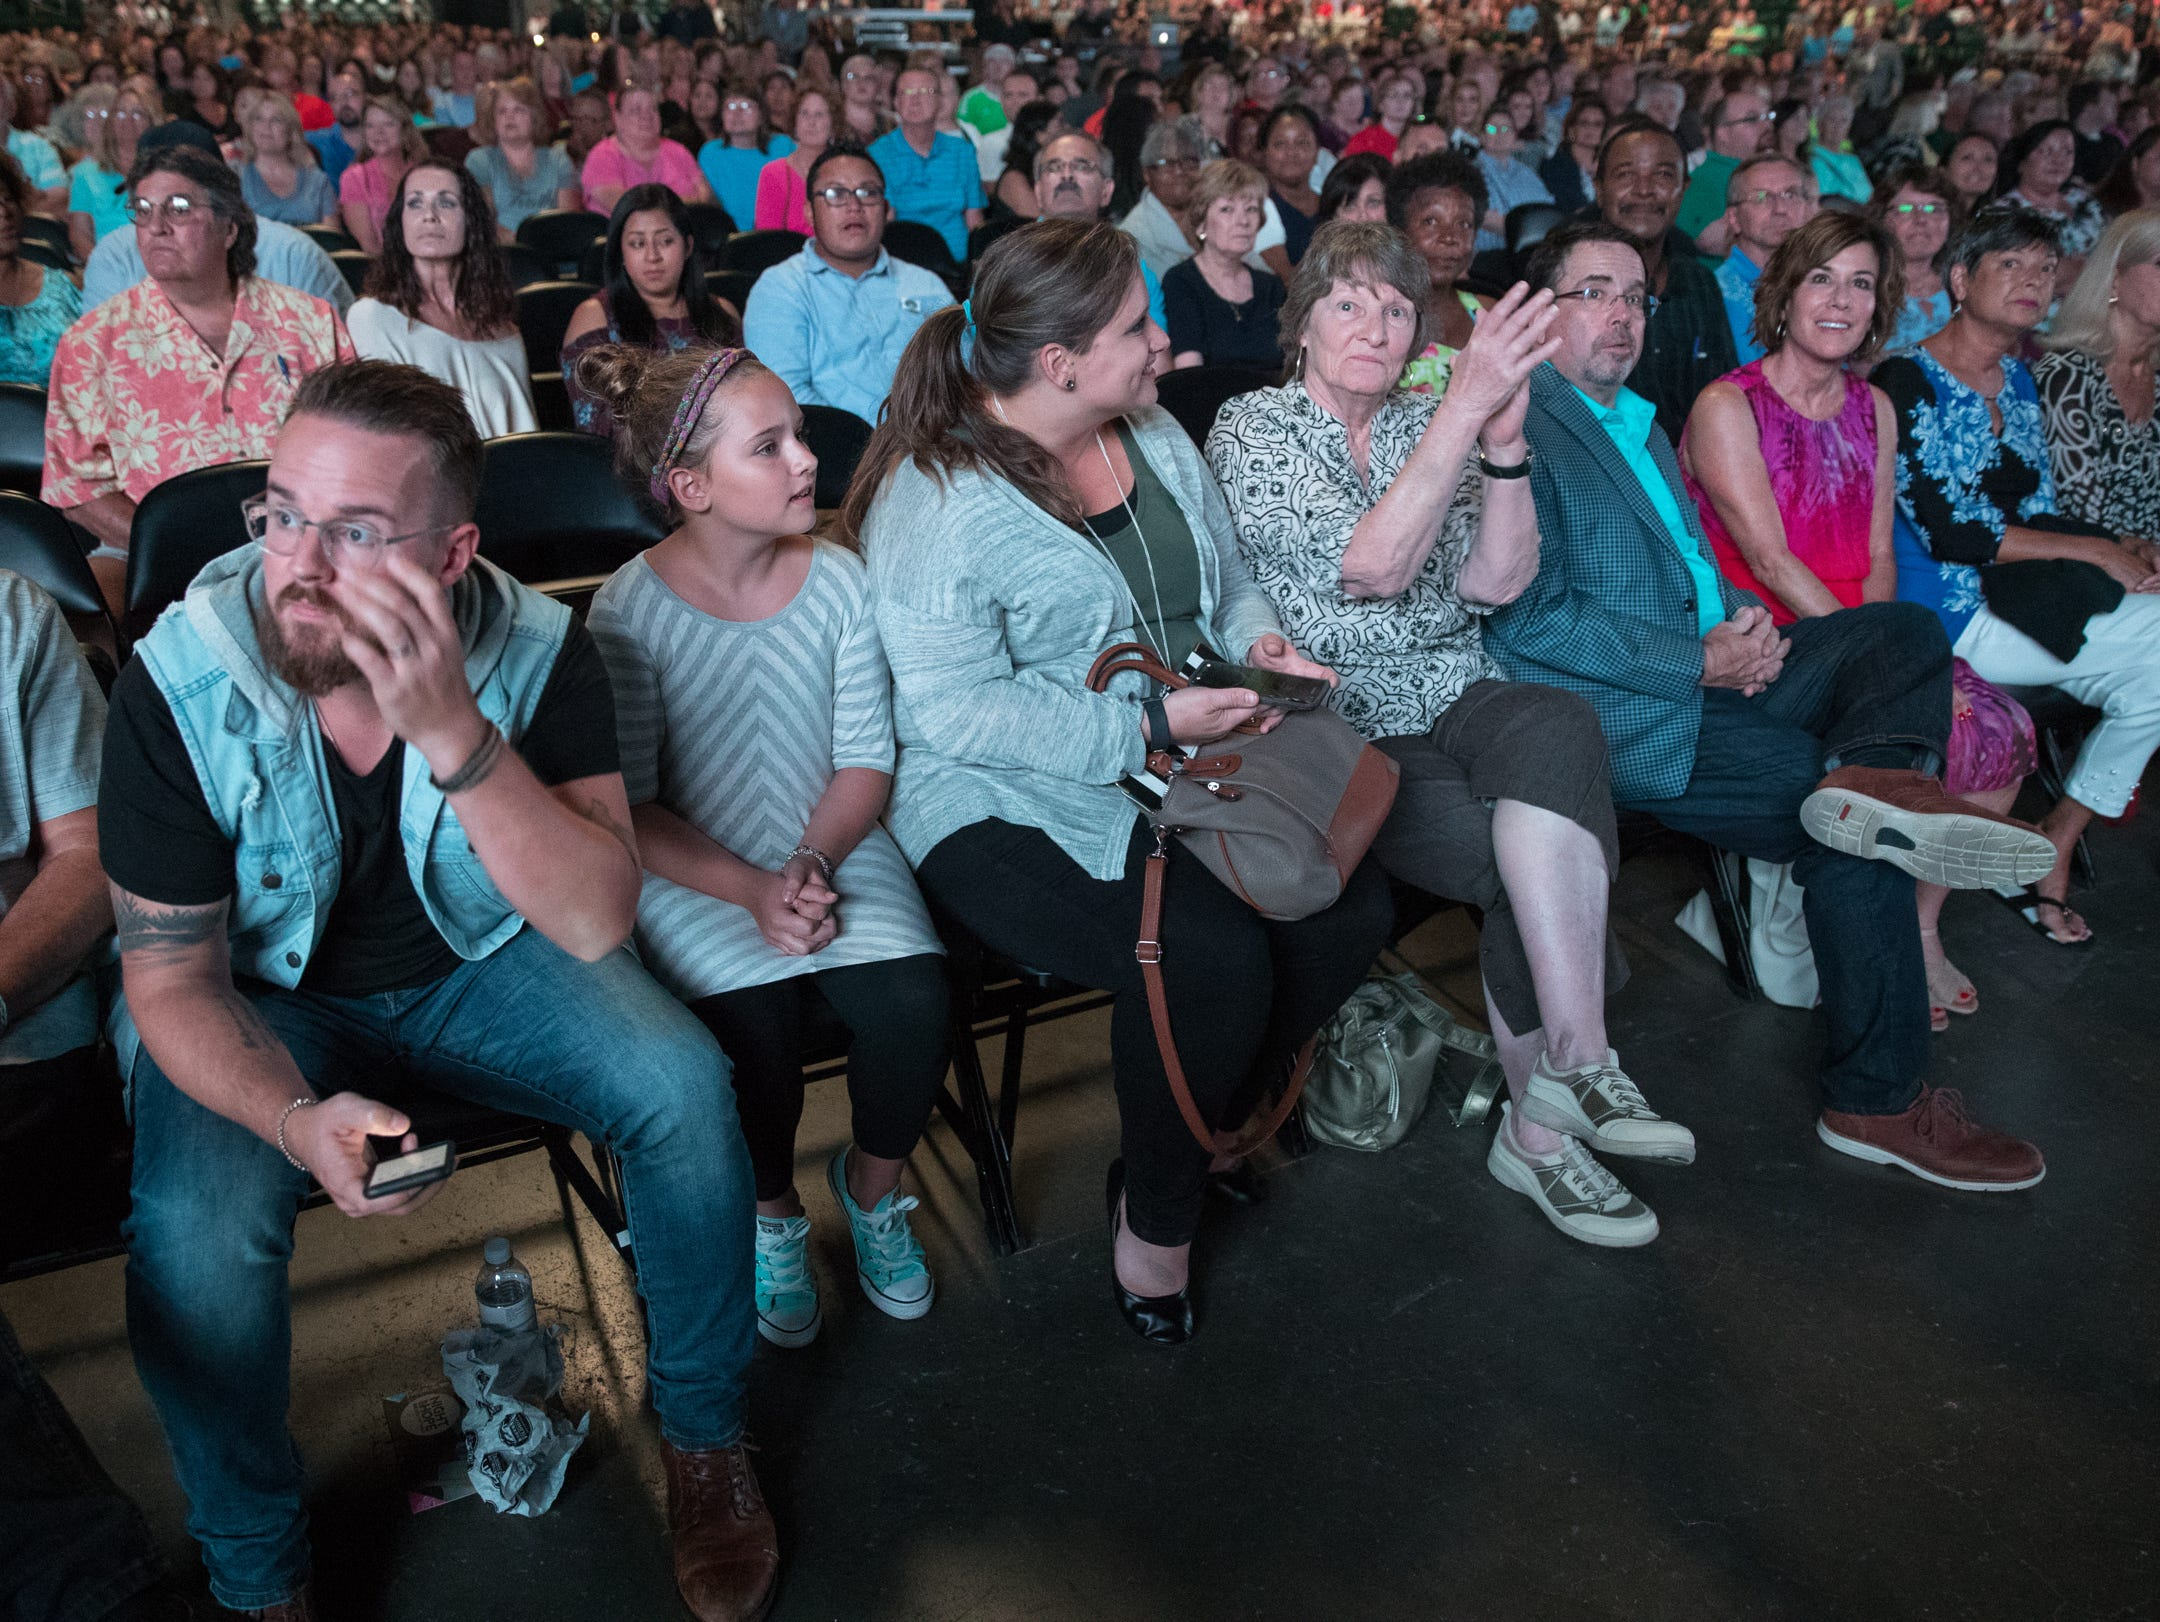 Fans wait for the start of the Osteen event at Bankers Life Fieldhouse, Indianapolis, Friday, Aug. 10, 2018. The event, dubbed Night of Hope with Joel and Victoria, drew about 8,000 people to the arena for the event with the Houston-based televangelist.